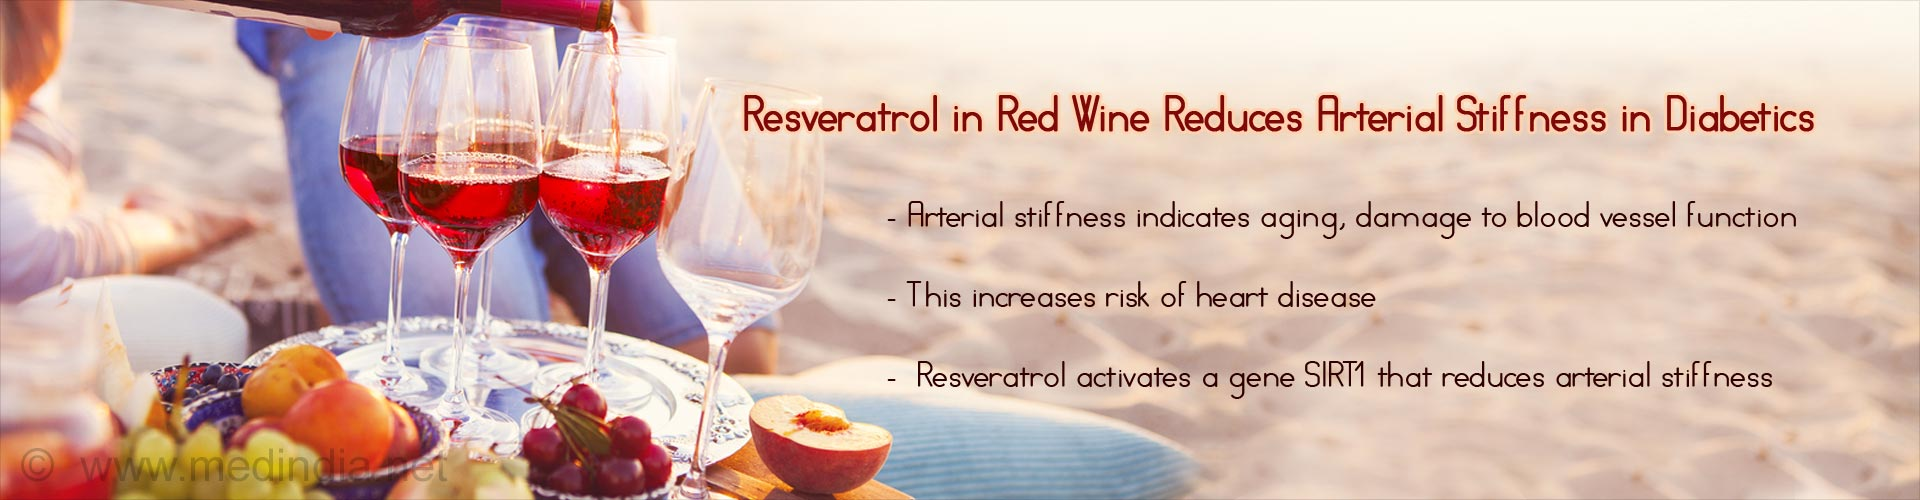 resveratrol in red wine reduces arterial stiffness in diabetics